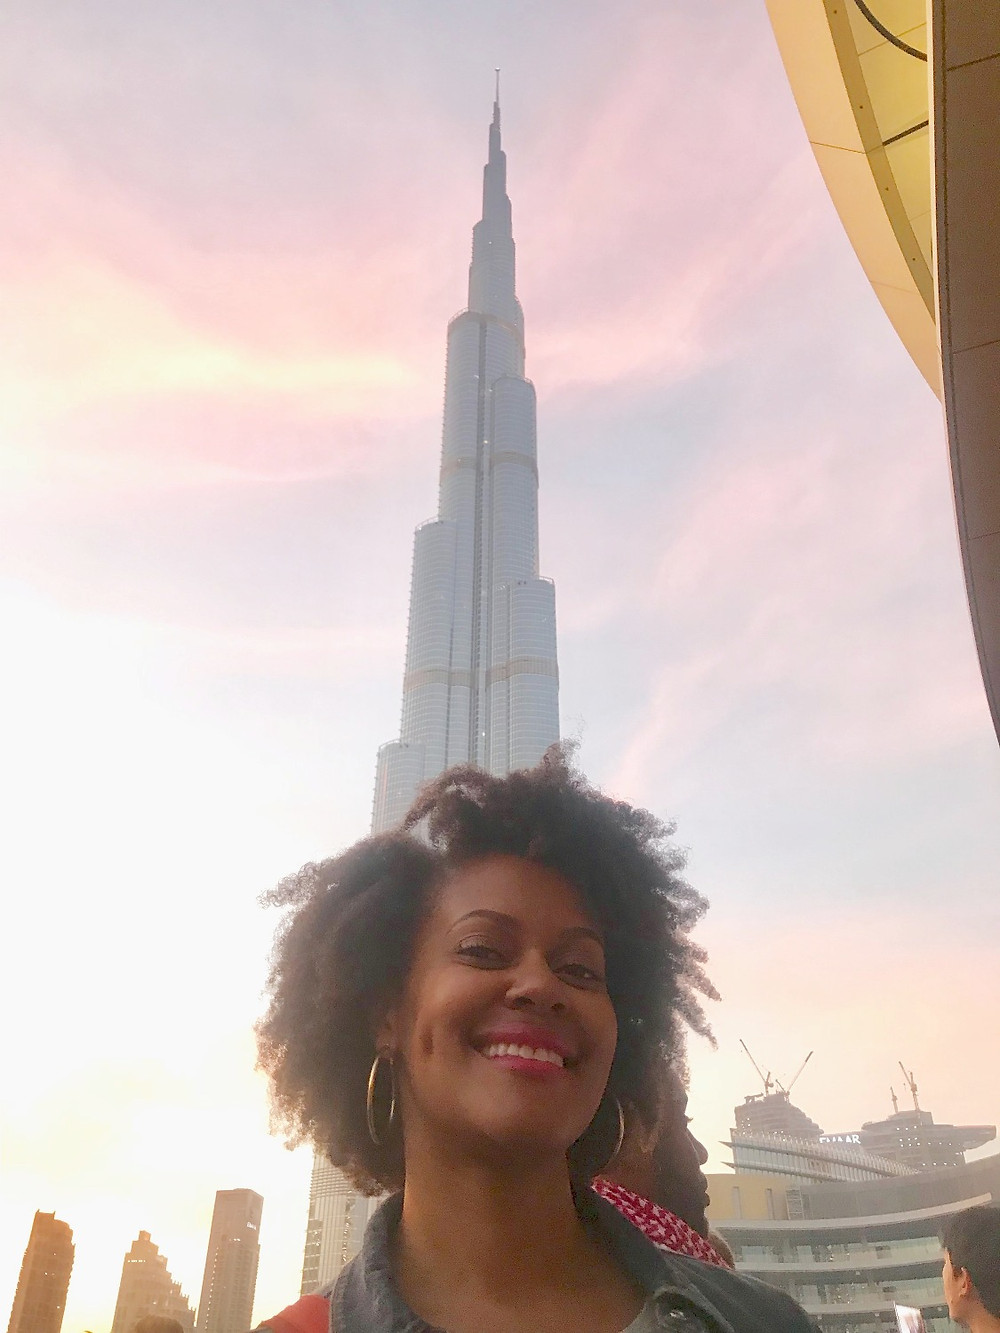 Back on the ground, posing in front of the Burj Khalifa